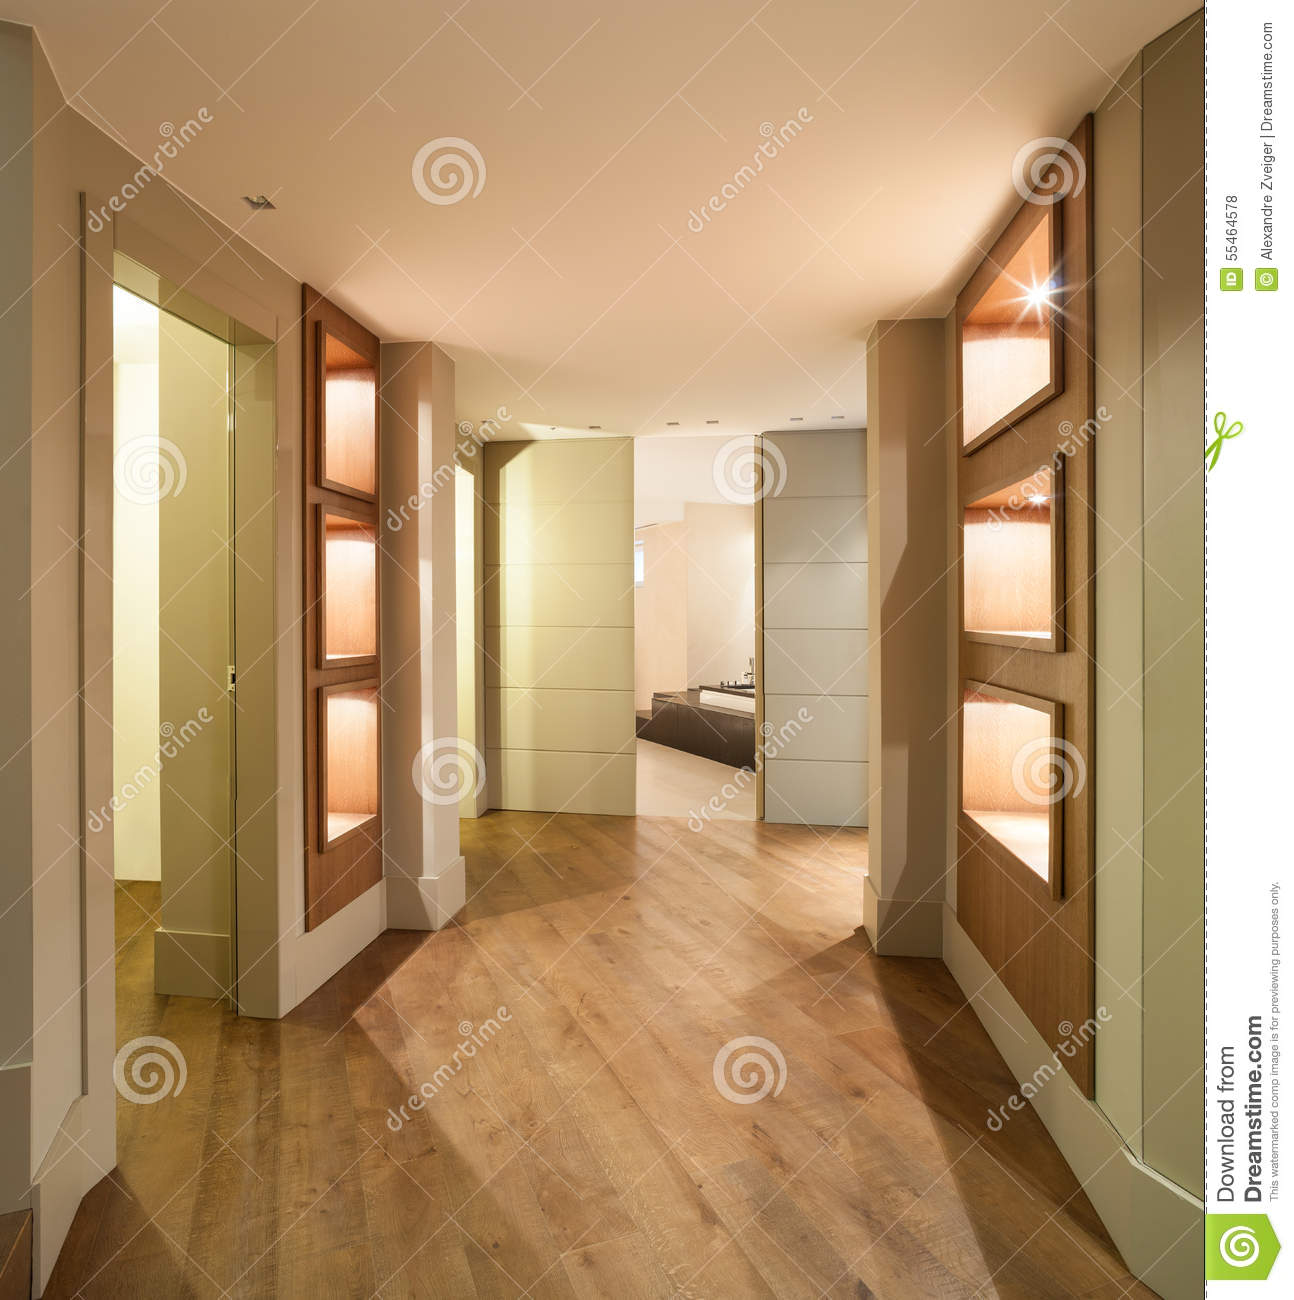 Couloir d 39 une maison moderne photo stock image 55464578 for Photo couloir maison